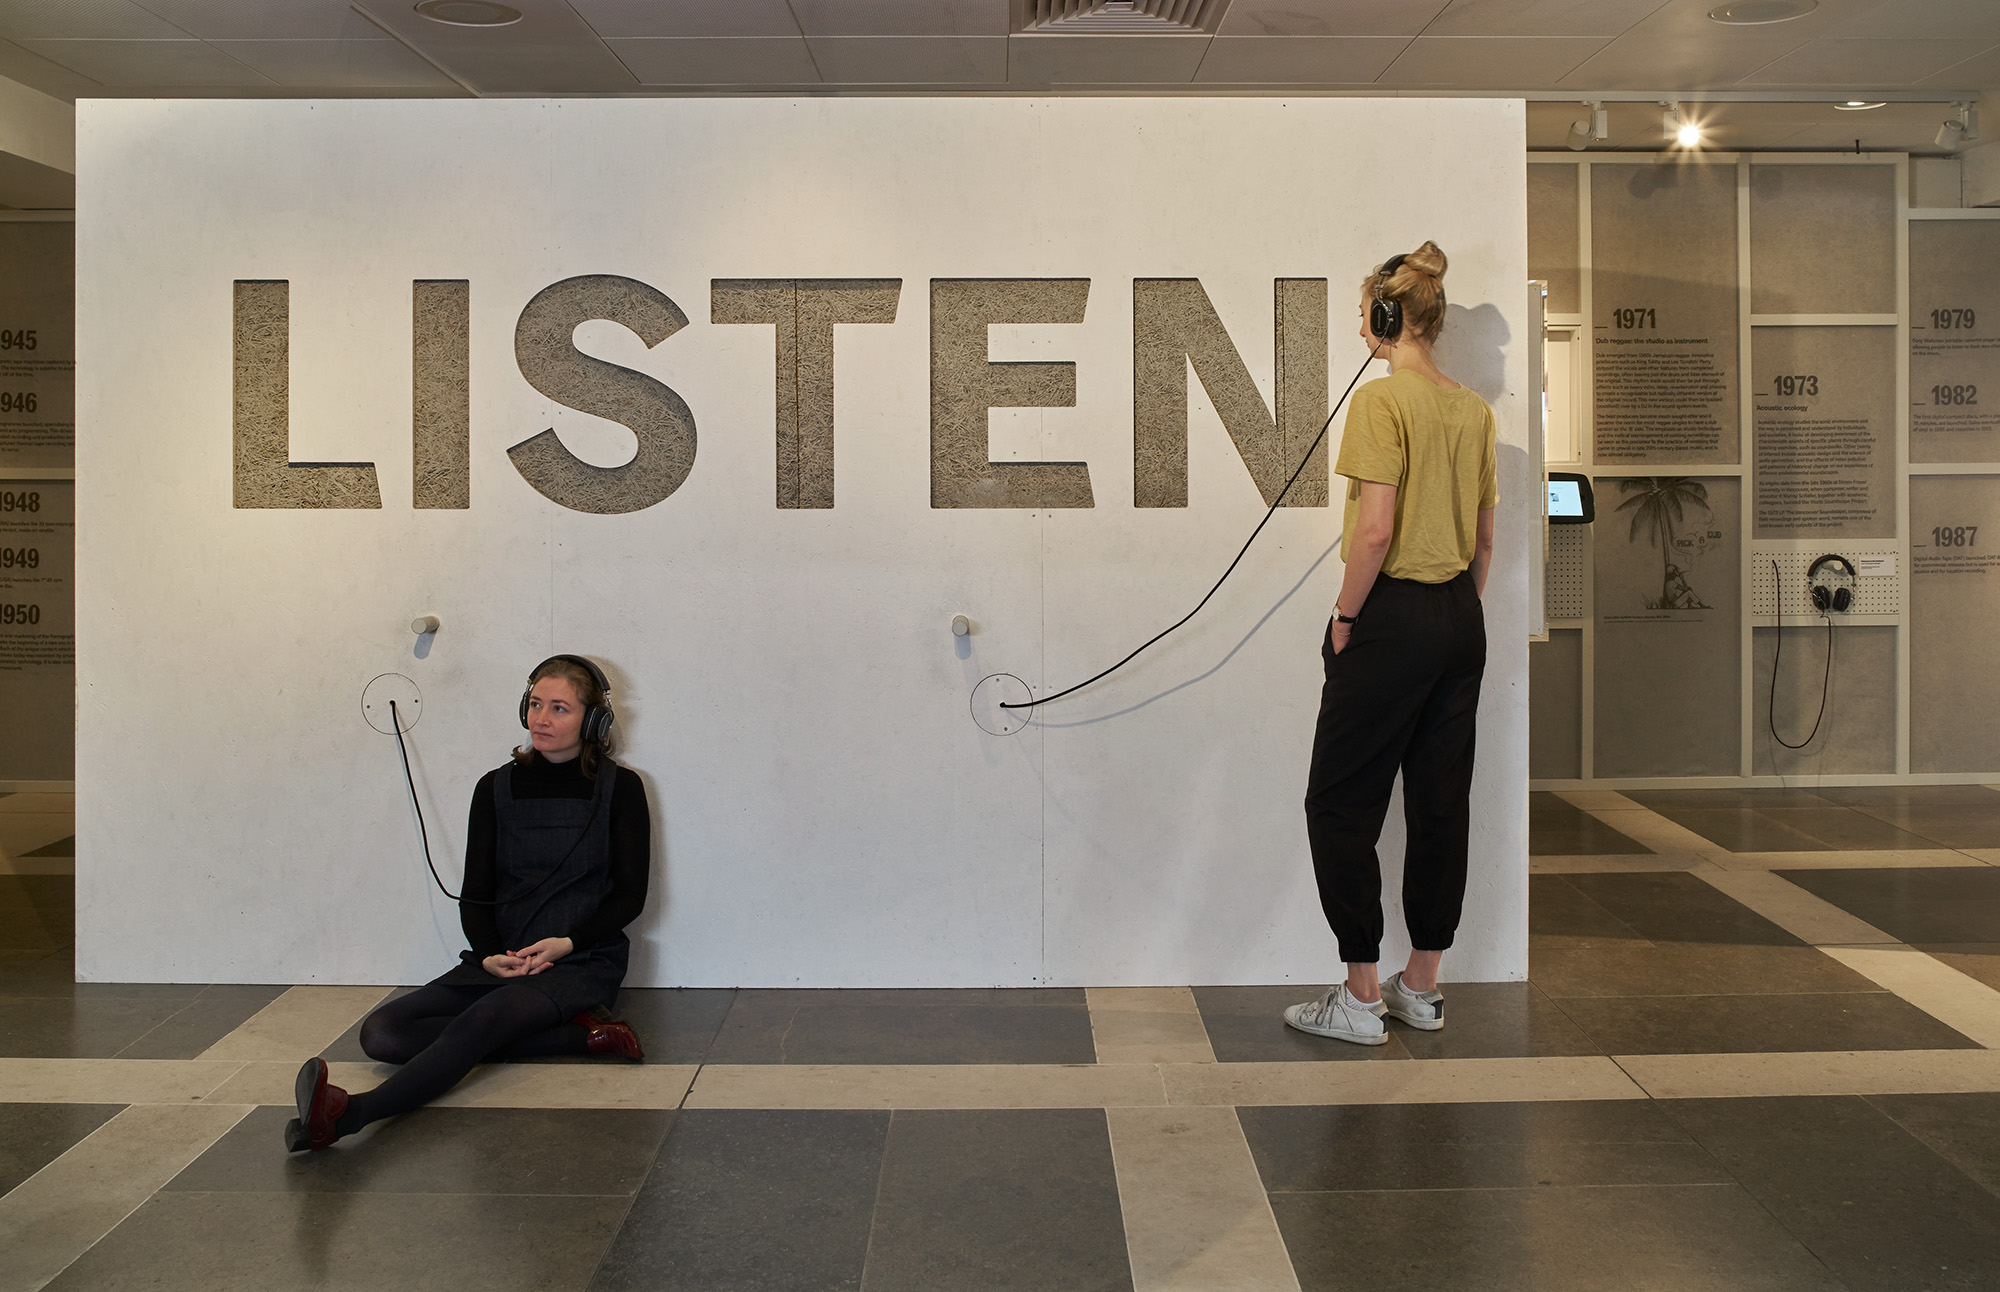 Listen, 140 years of recorded sound   Exhibition design, British Library, 2017   Displaying the extensive British Library's sound archive, this exhibition explores the story of sound recording and radio broadcasting, and the impact each had on society in the last 140 years.  On a 20m sound proof wall, a timeline showcases various media ranging from objects, to audio displays and images. The graphics printed on a transparent voile allow visitors to discover the insulation material at the back.  People are also invited to sit within specially created listening booths that surround the showcases. A focus on providing smaller audio environments within a larger collective space aims to create a feeling of listening as a way of bringing people together through shared engagement.  Project completed with Plaid London